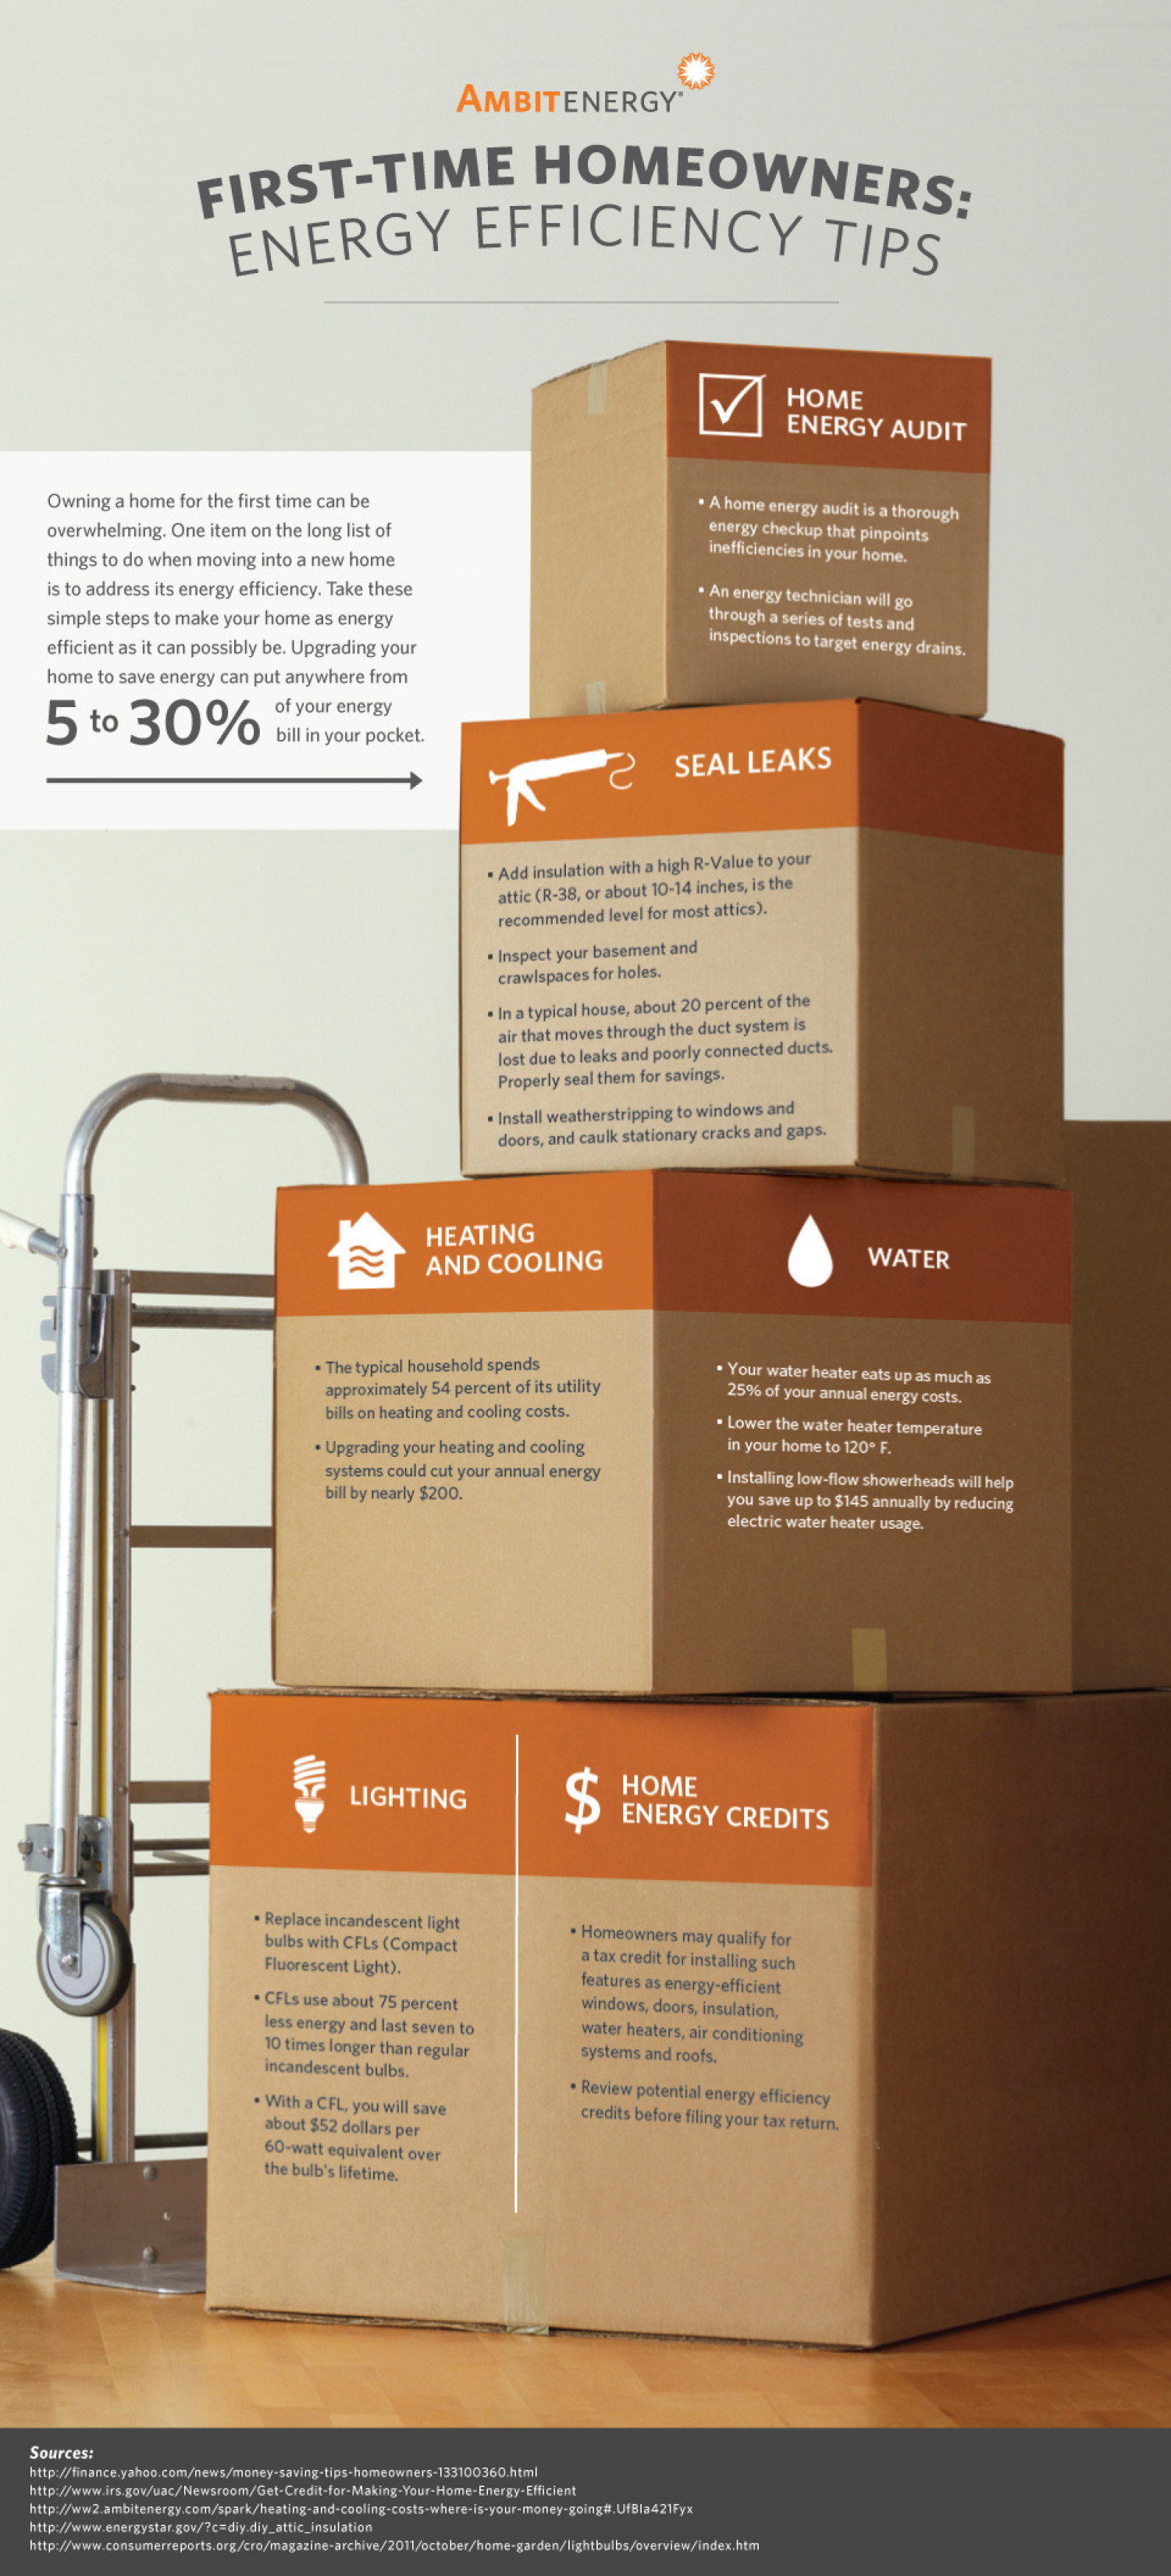 First-Time Homeowners: Energy Efficiency Tips for Extra Savings Infographic